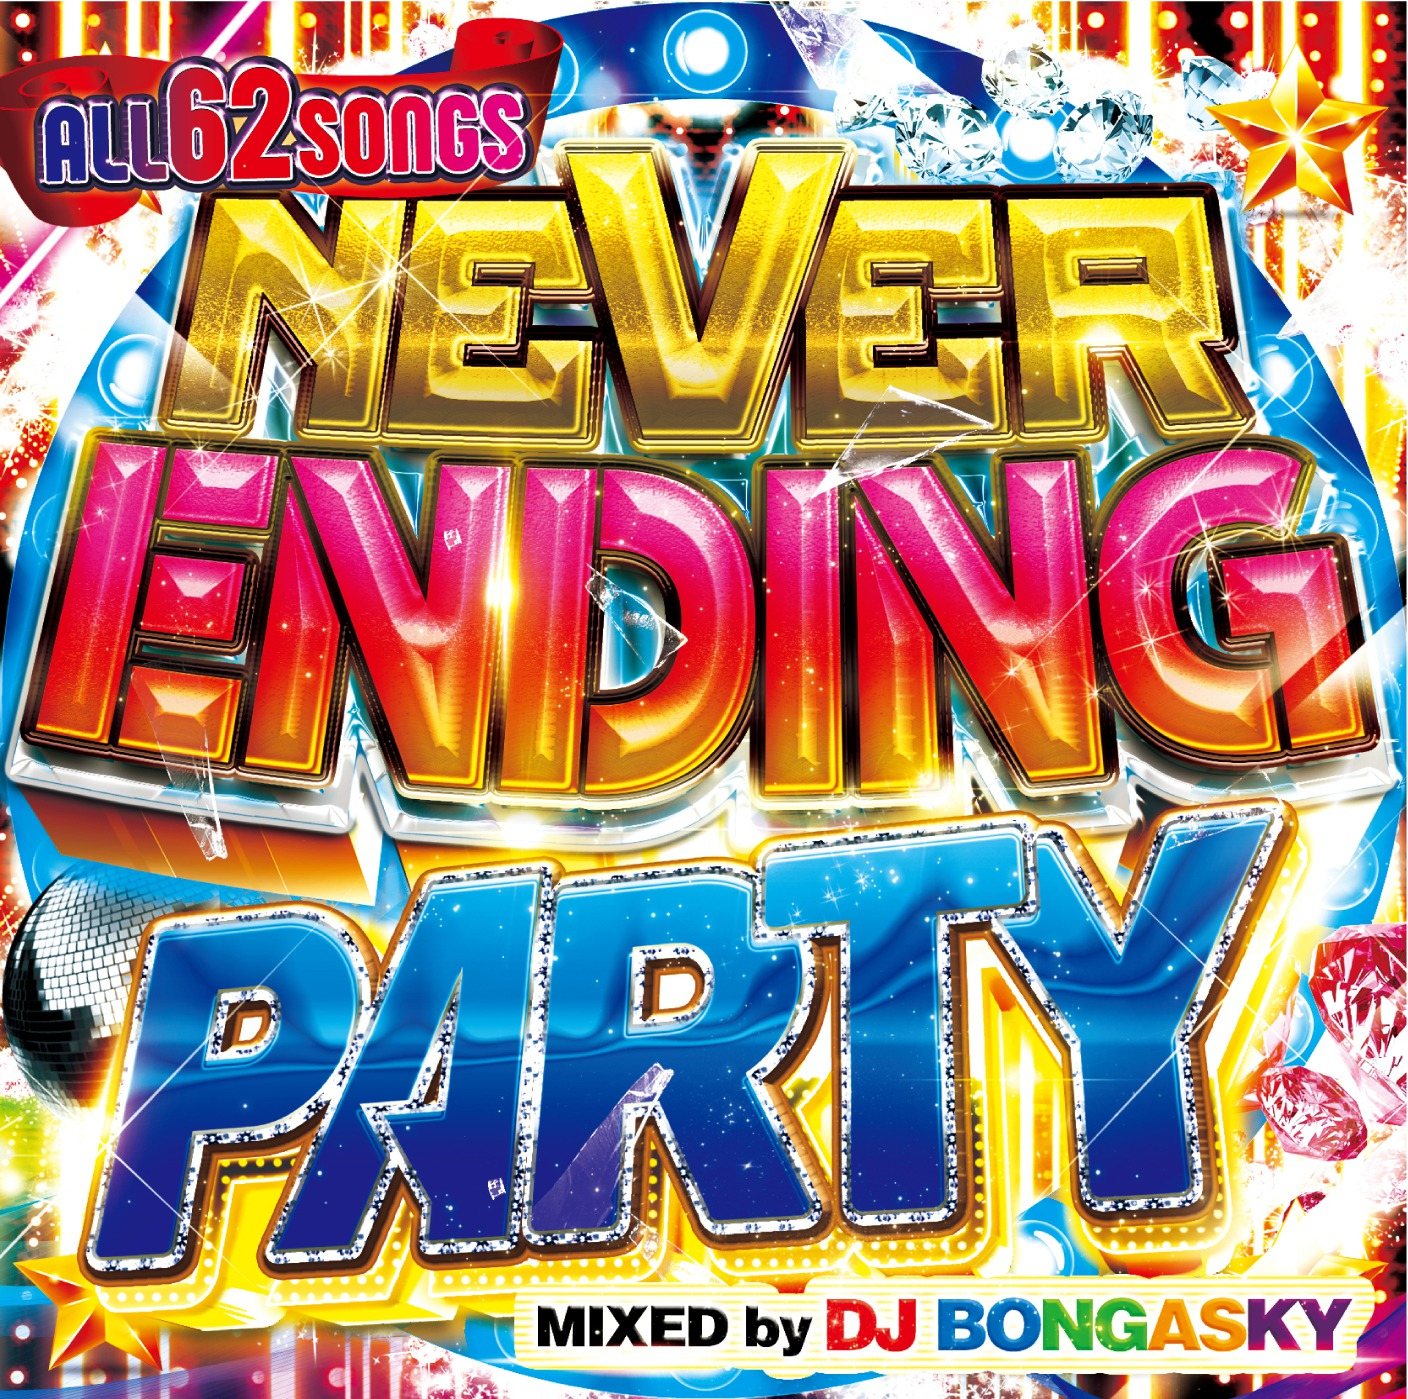 【1枚組】 NEVER ENDING PARTY / DJ BONGASKY 【[国内盤MIX CD】